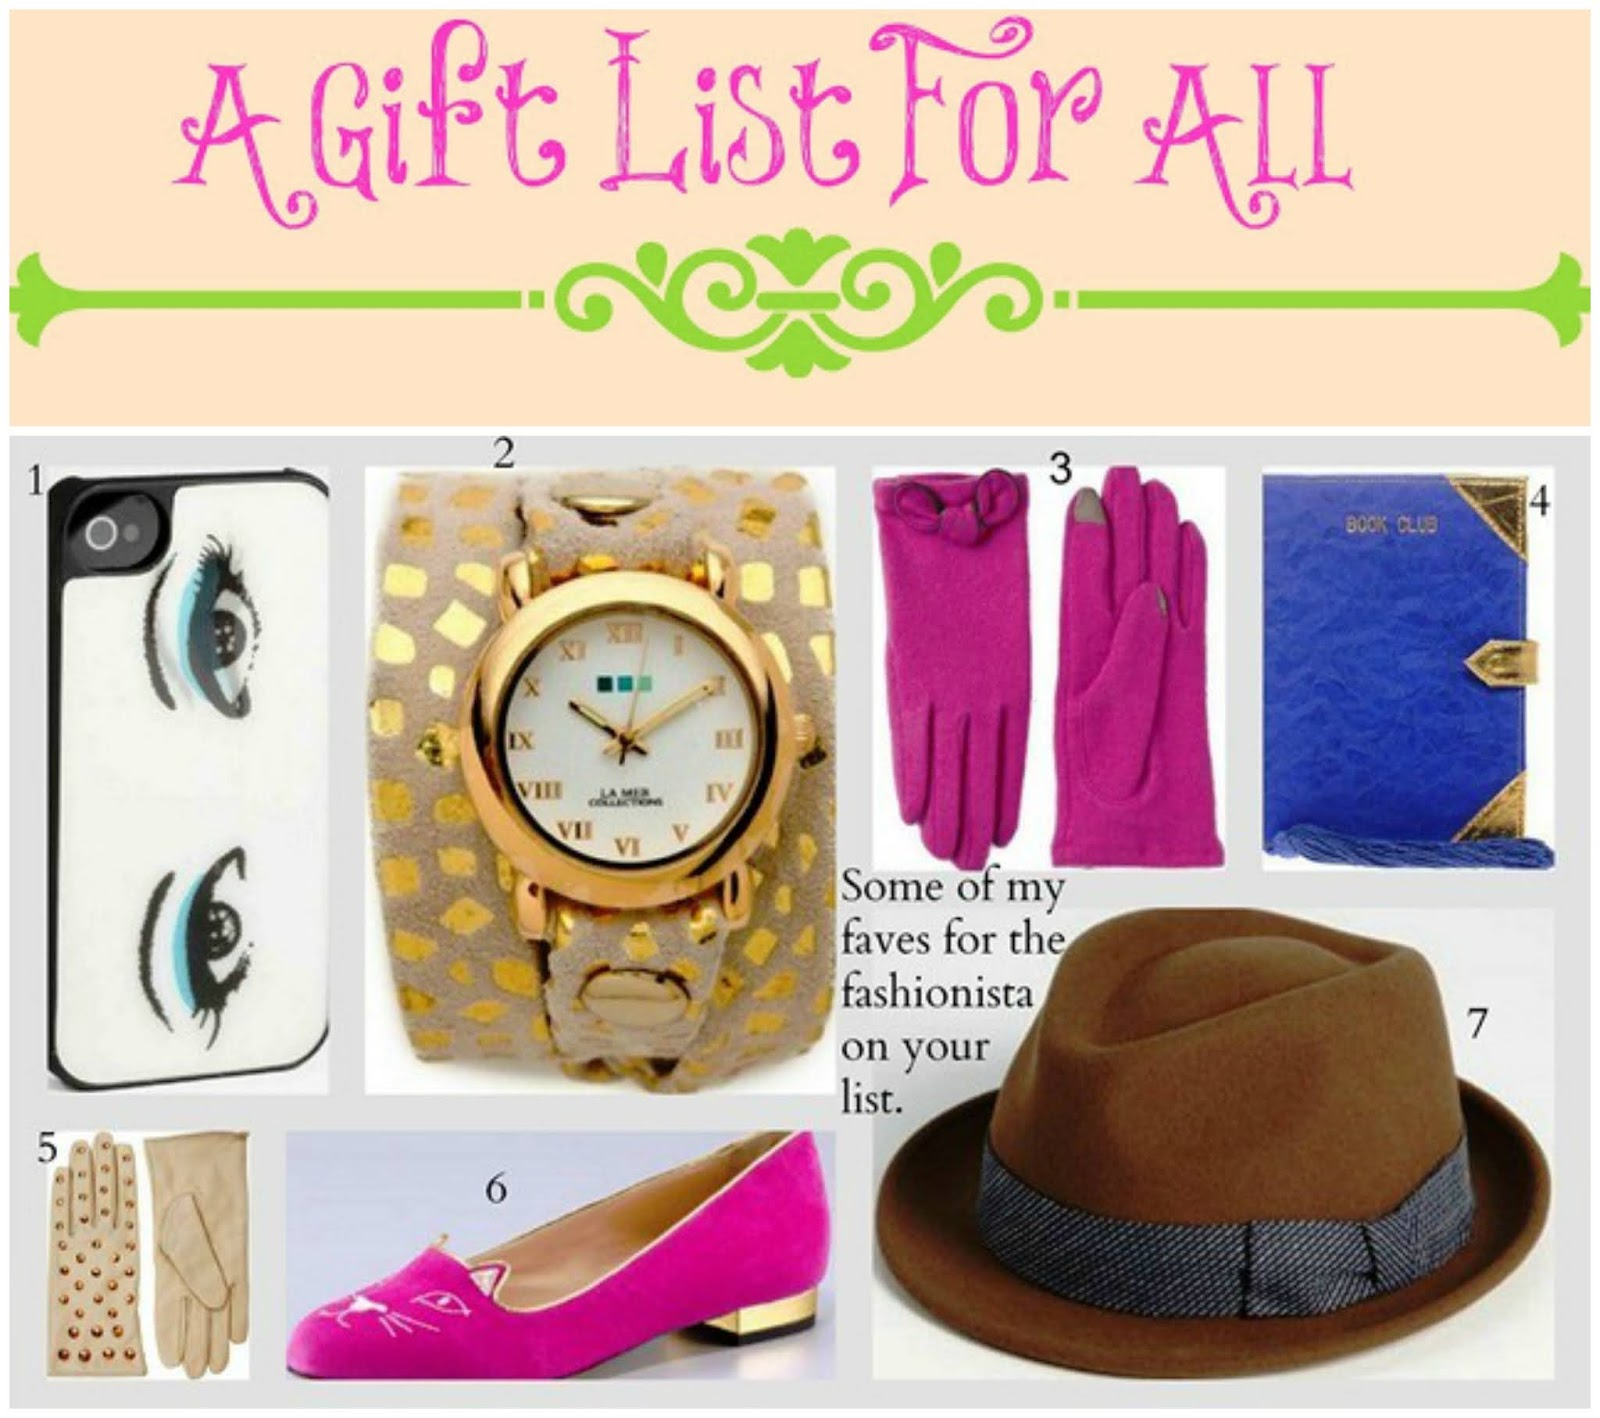 fall-giftfuide-for-all-on-the-shopping-list